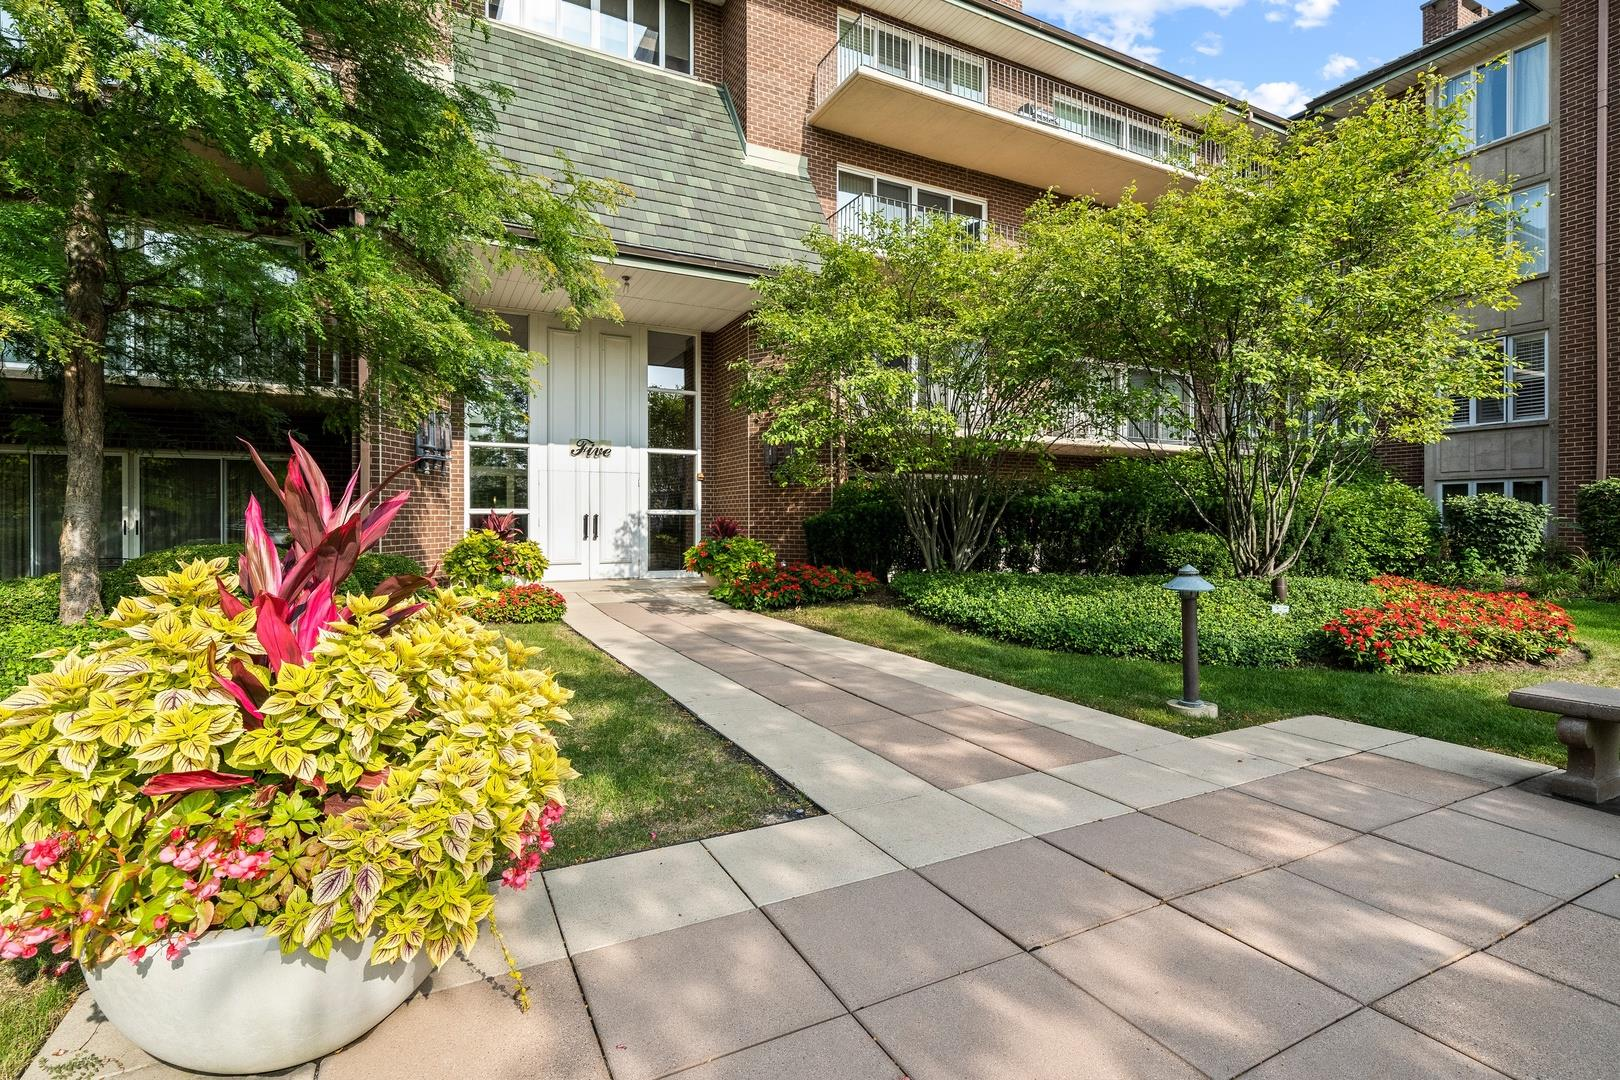 5 Oak Brook Club Drive #S306, Oak Brook, IL 60523 - #: 10860347